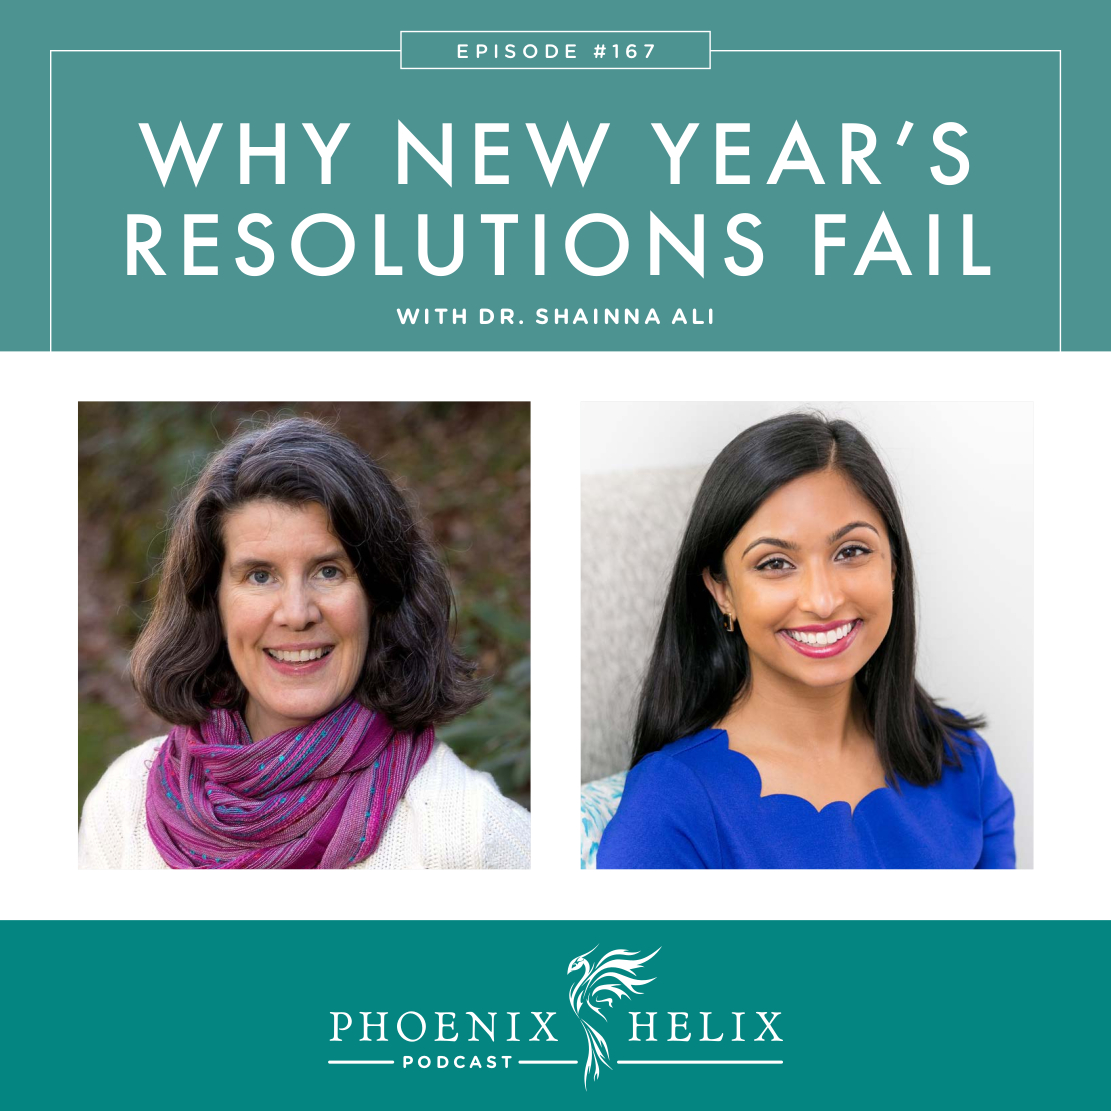 Why New Year's Resolutions Fail with Dr. Shainna Ali | Phoenix Helix Podcast